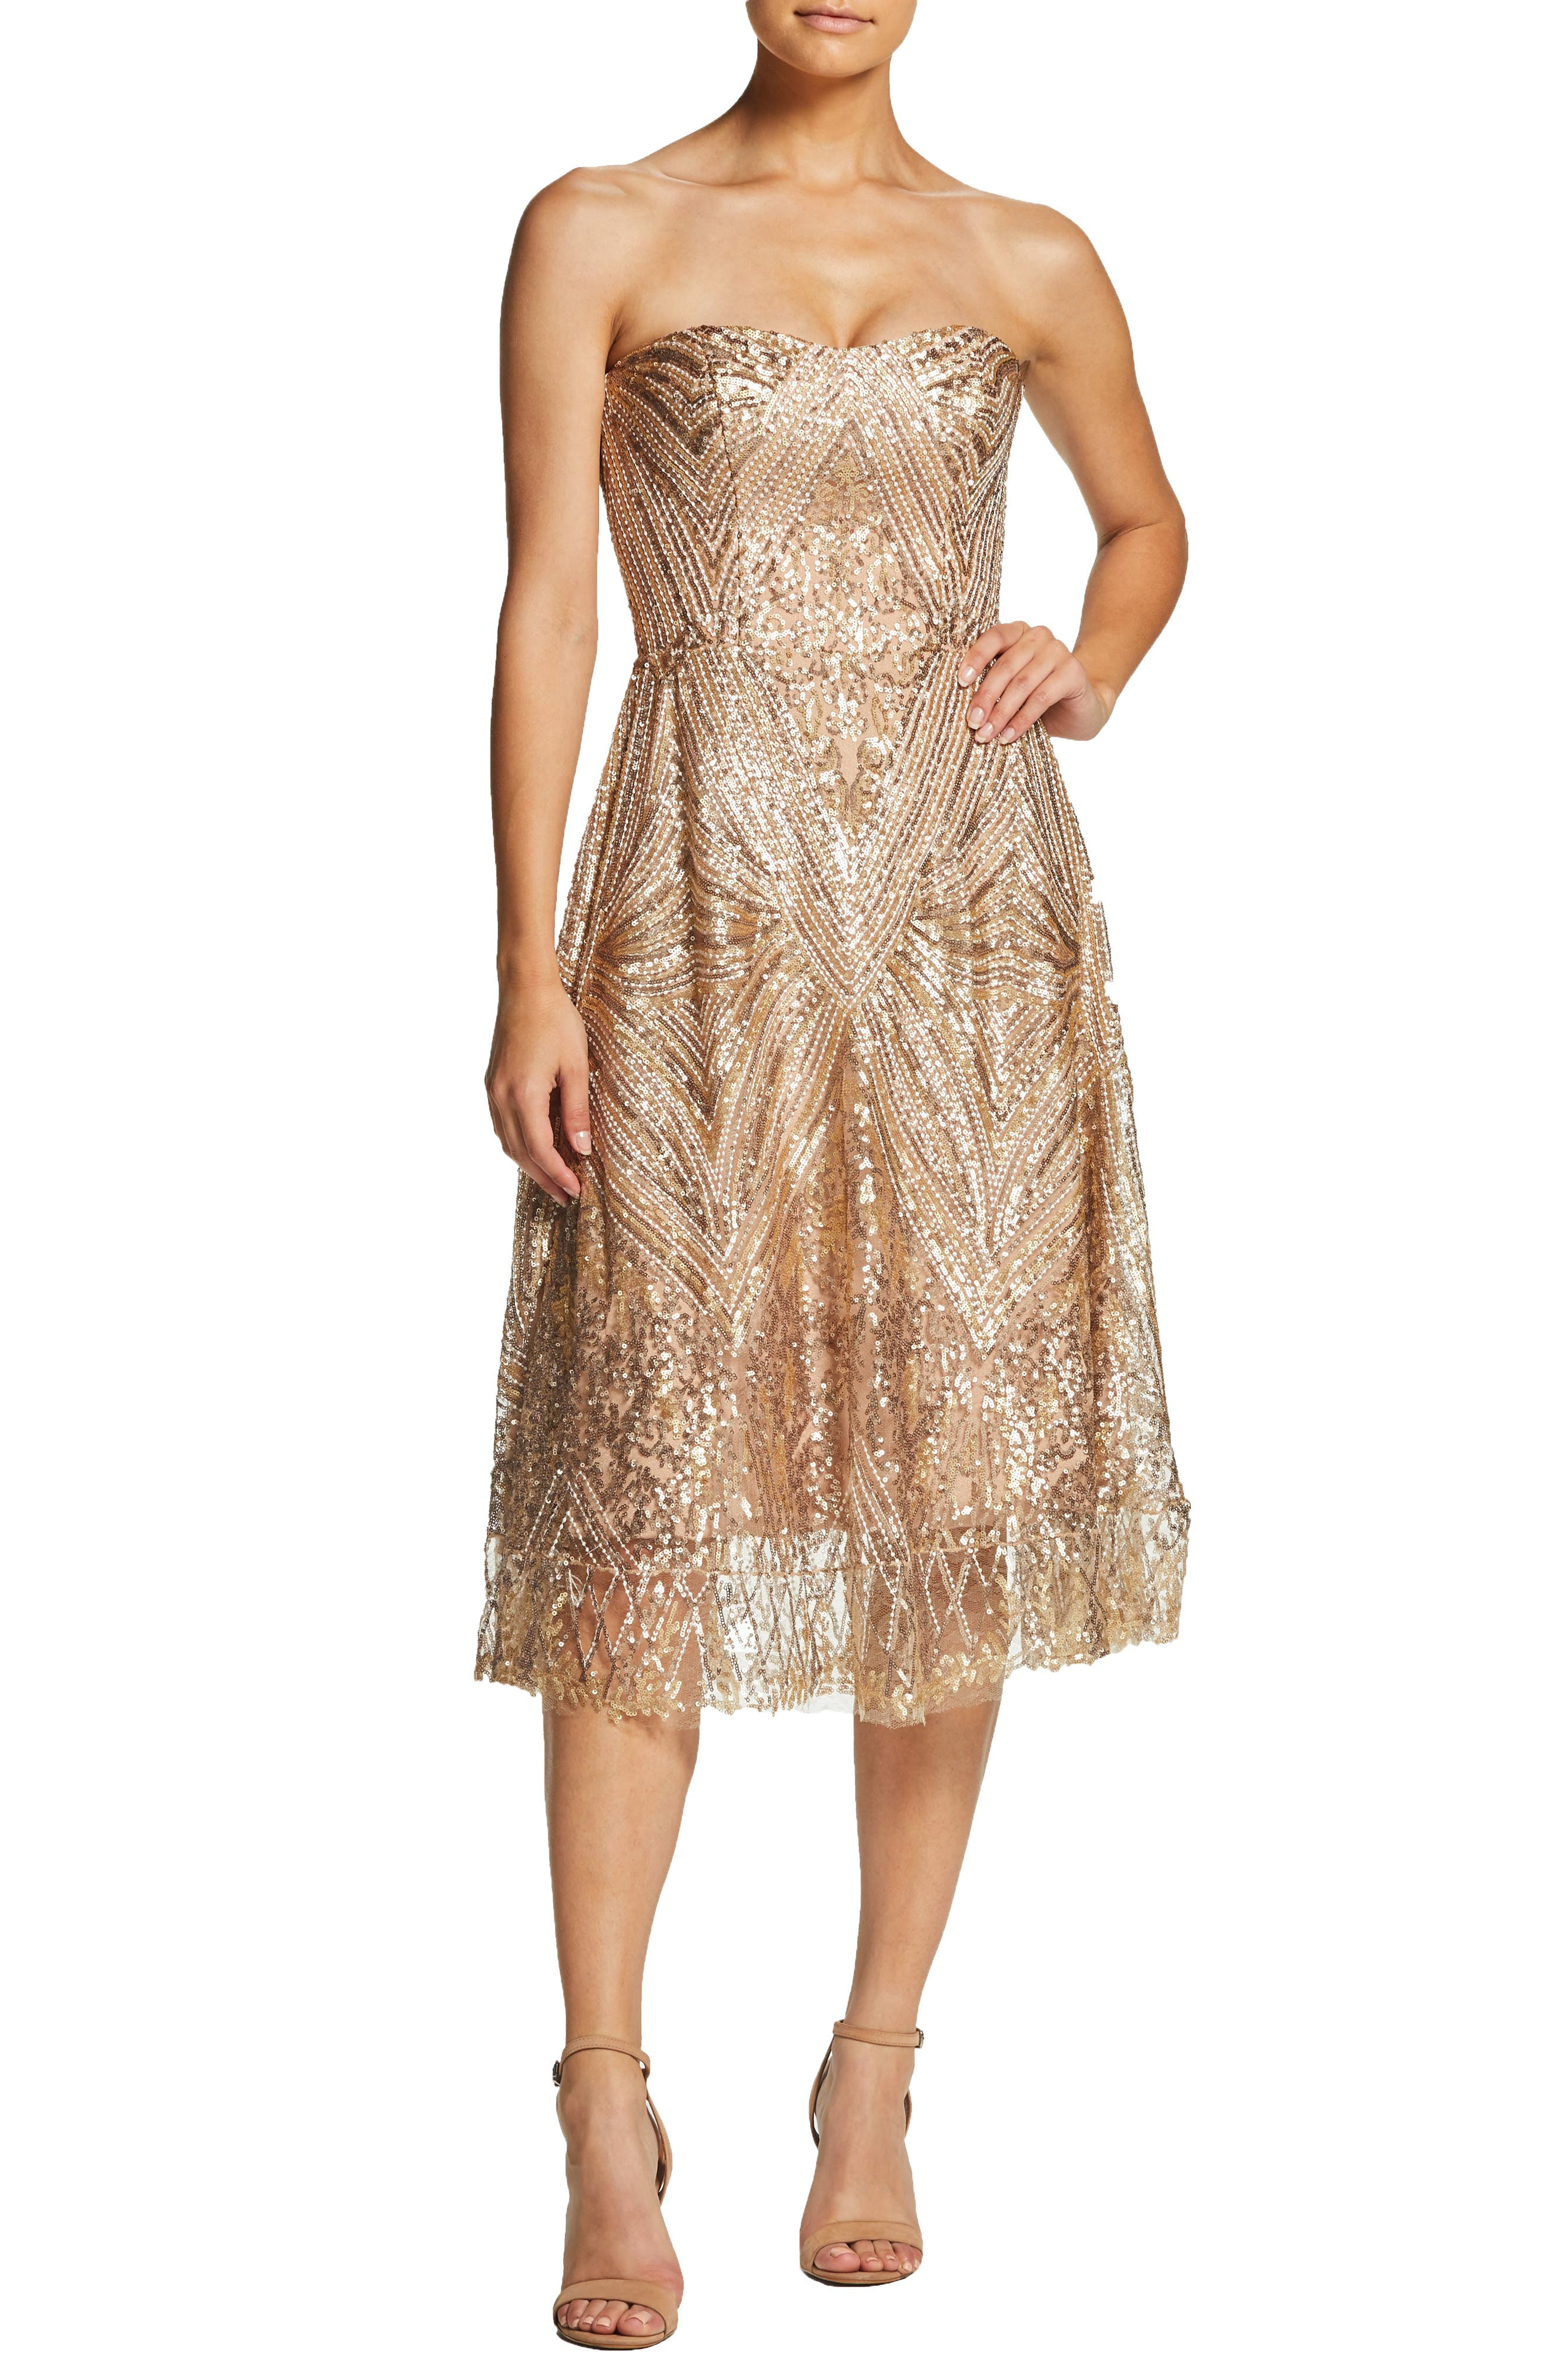 DRESS THE POPULATION Sarah Sequin Strapless Fit & Flare Dress, Main, color, GOLD/ BRASS